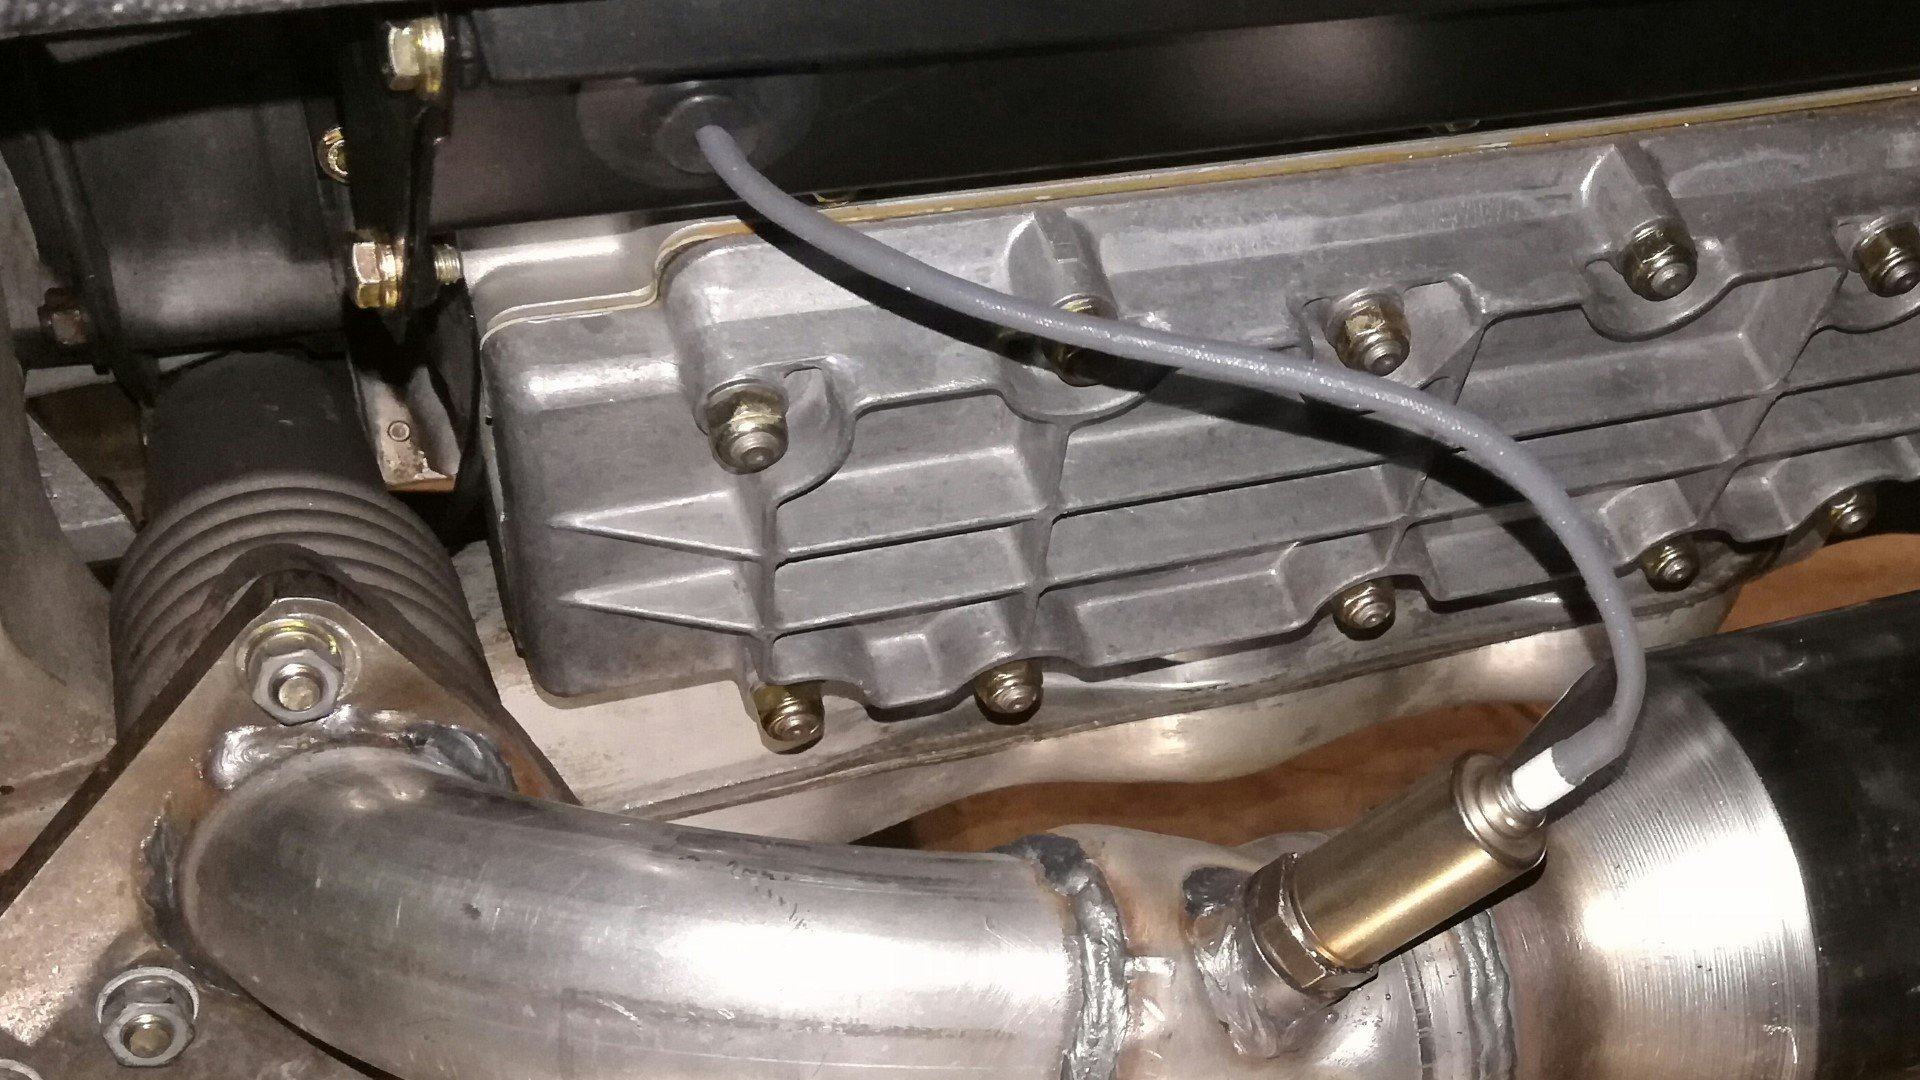 How To Replace The Oxygen Sensor On A Classic Air-Cooled Porsche 911